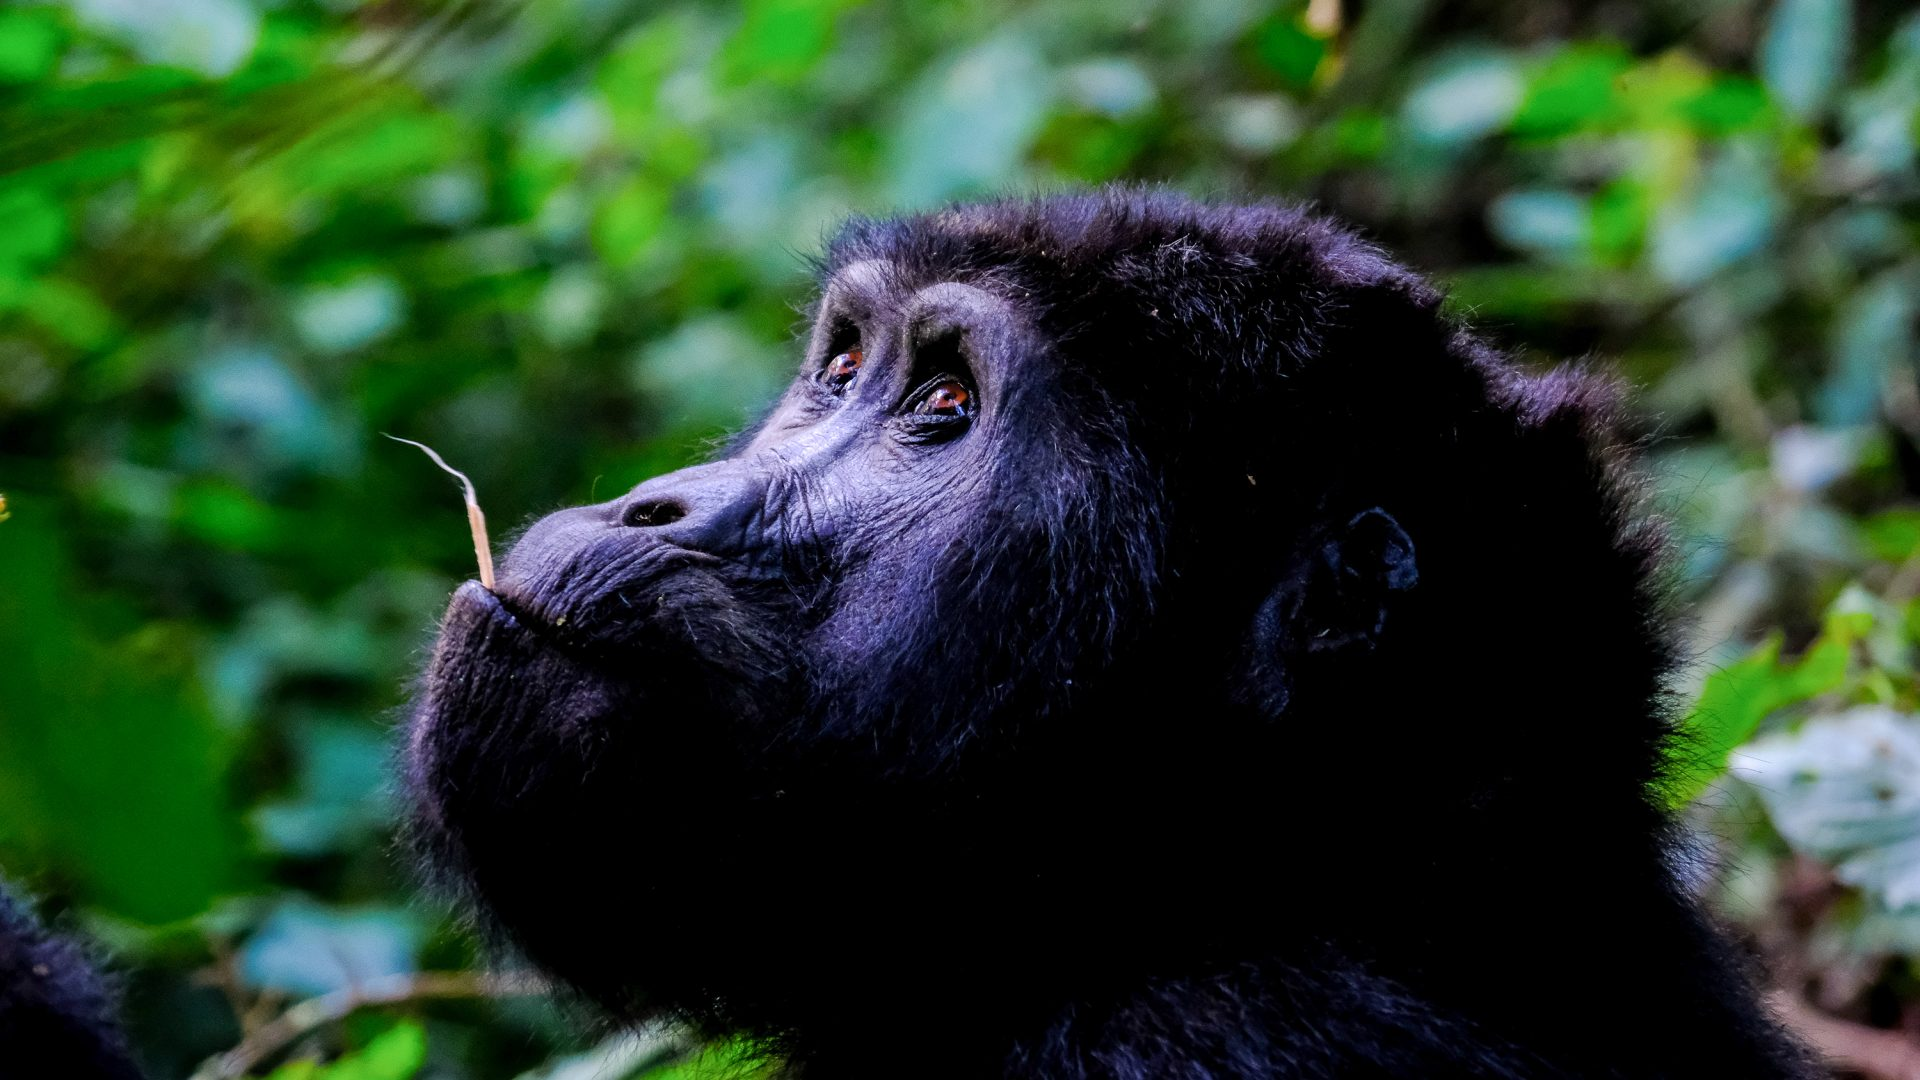 A gorilla surrounded by lush green forest.